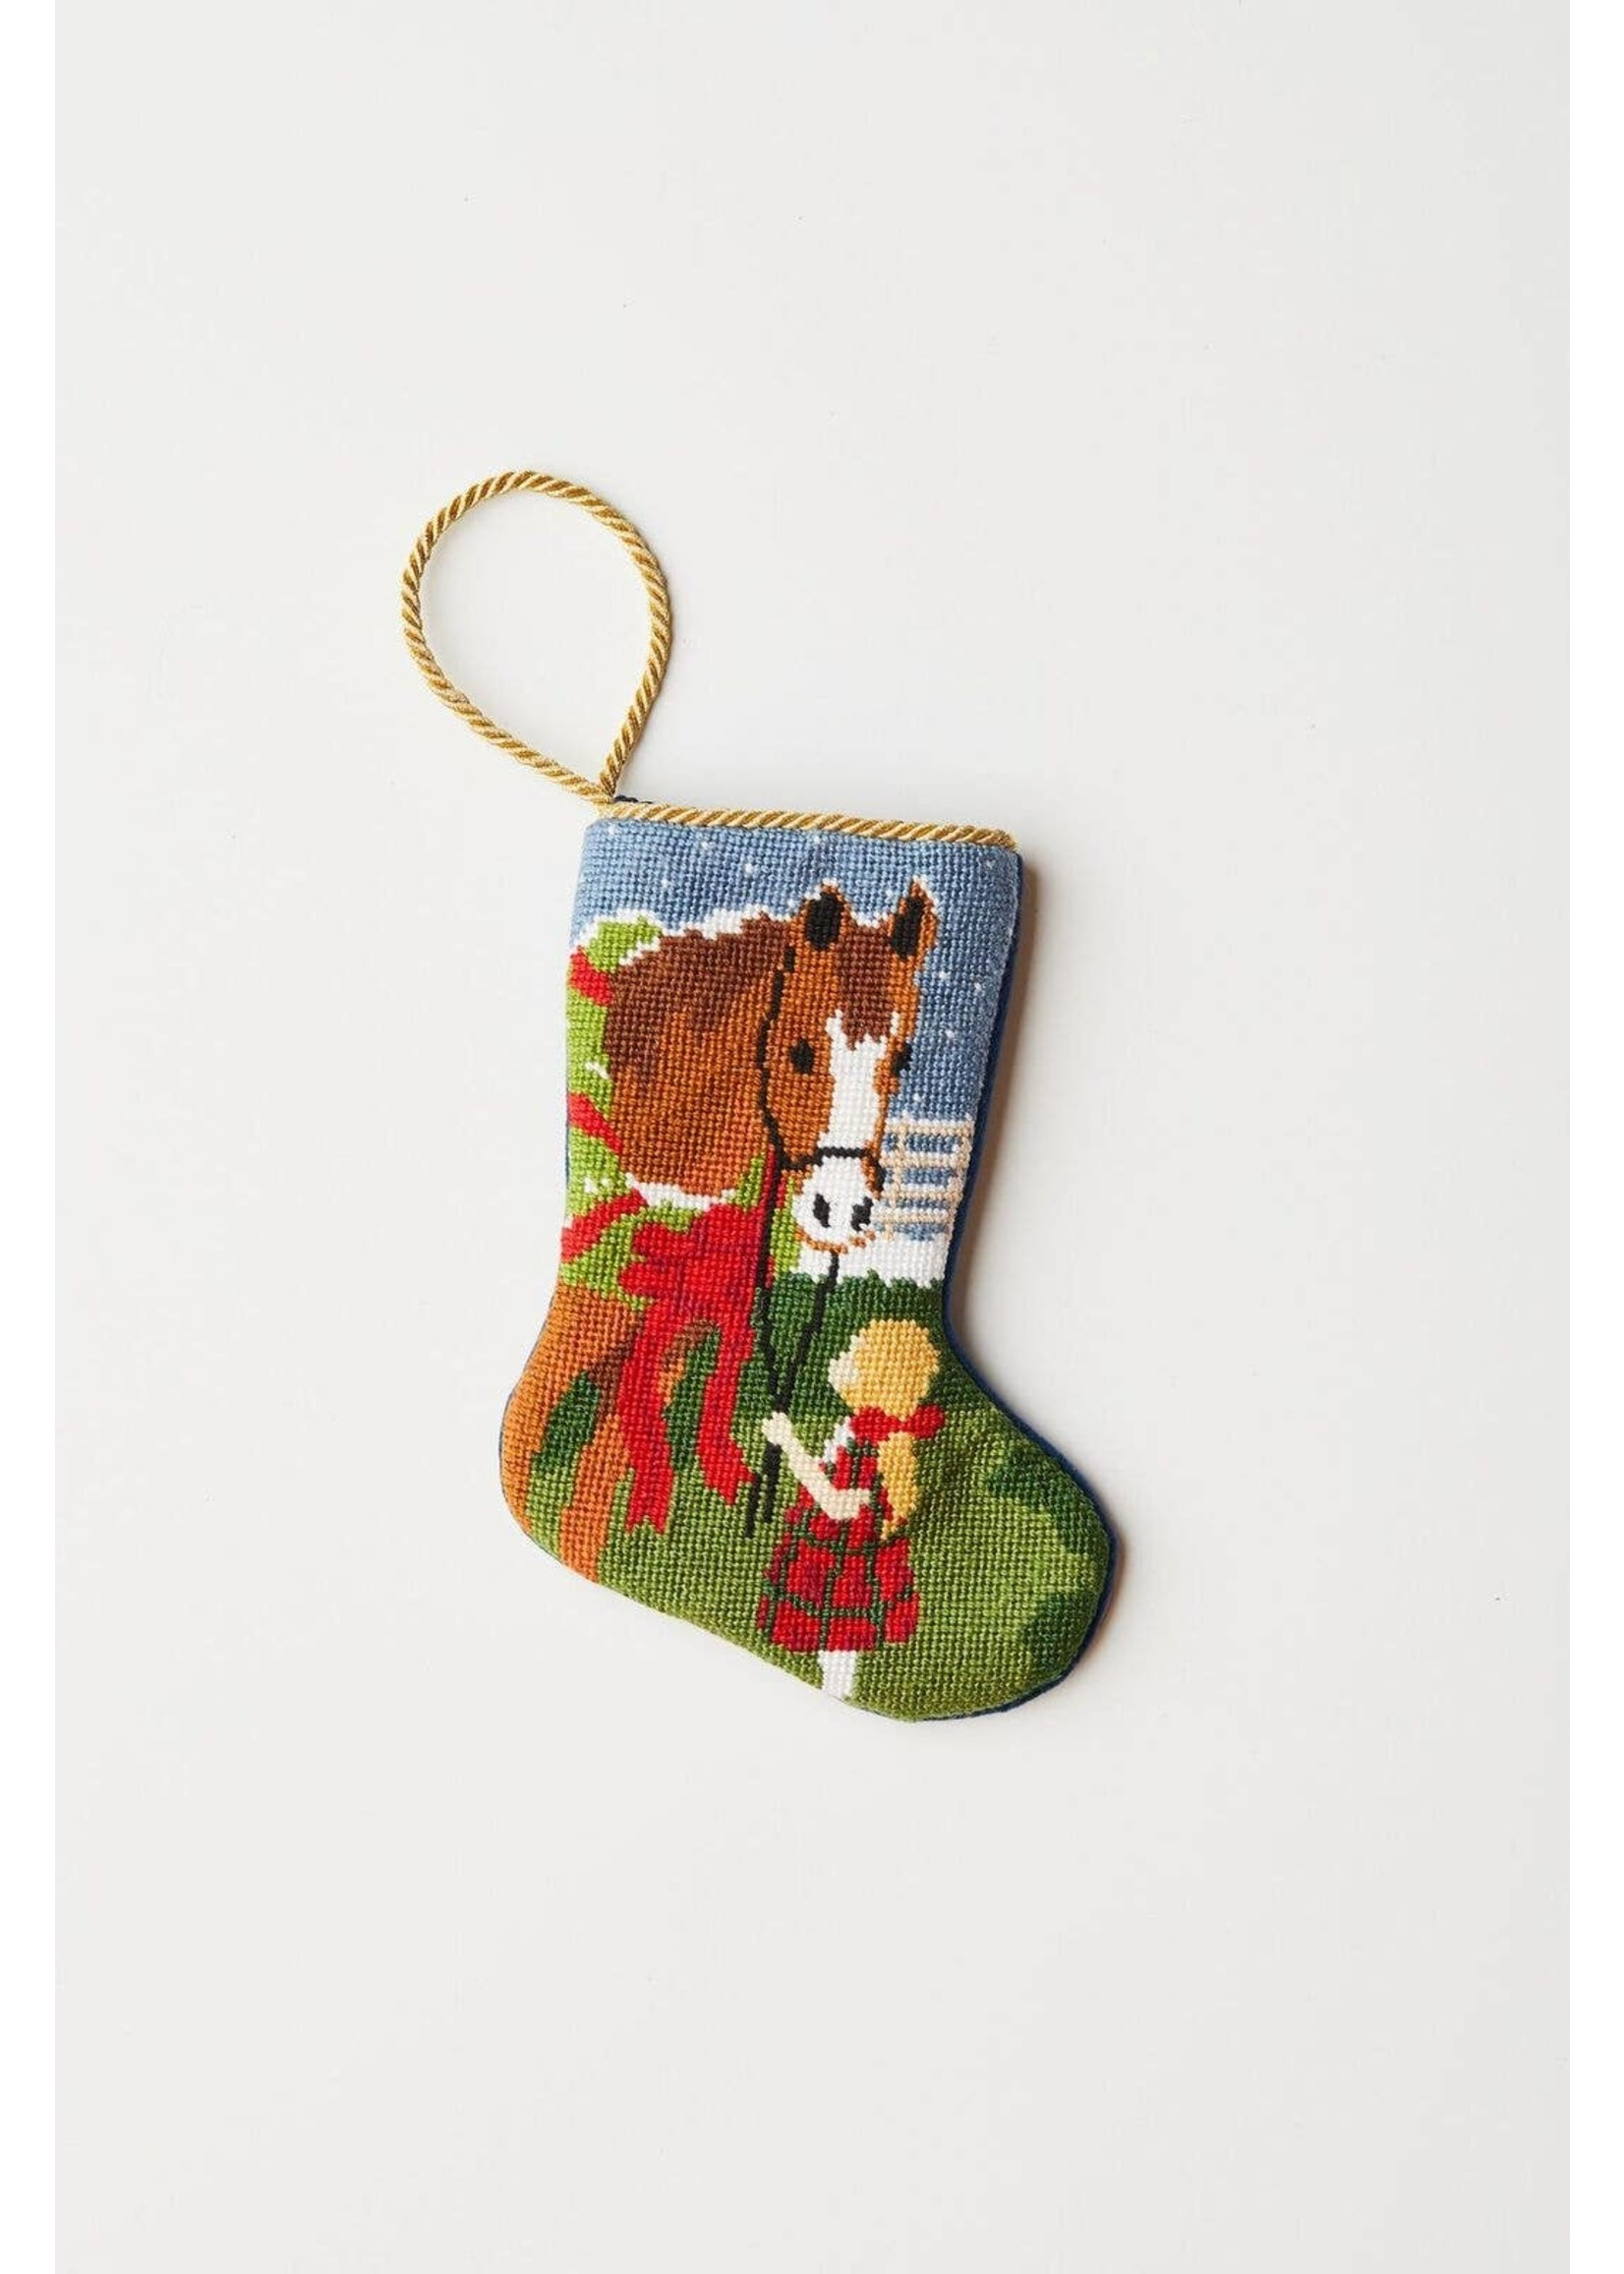 Bauble Stockings Bauble Stocking - All I Want for Christmas/Girl with Horse